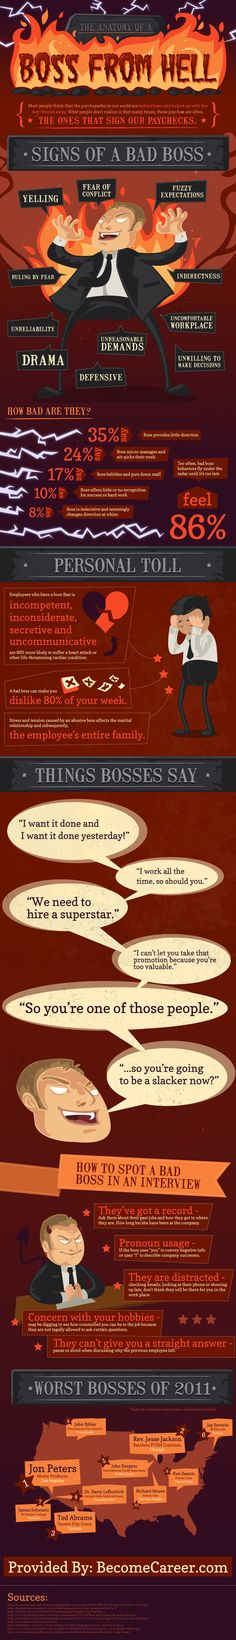 Anatomy of a BOSS FROM HELL #infographic